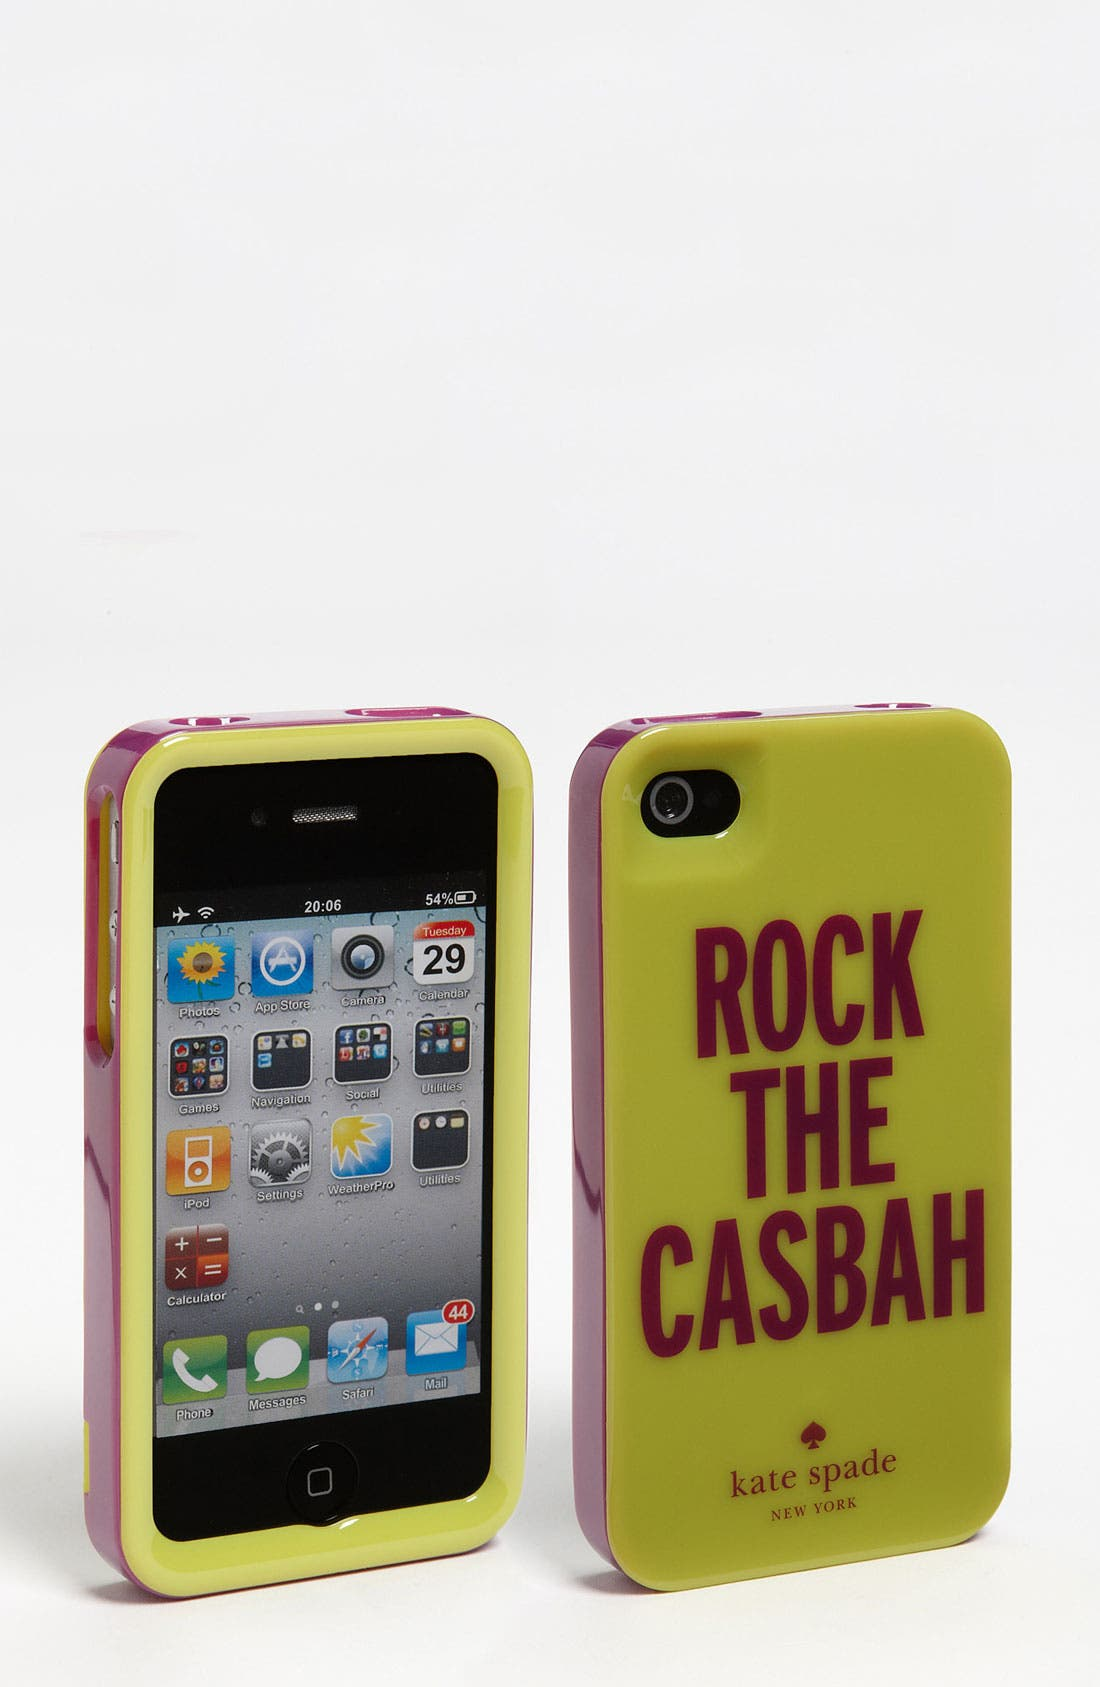 Main Image - kate spade new york 'rock the casbah' iPhone 4 & 4S case